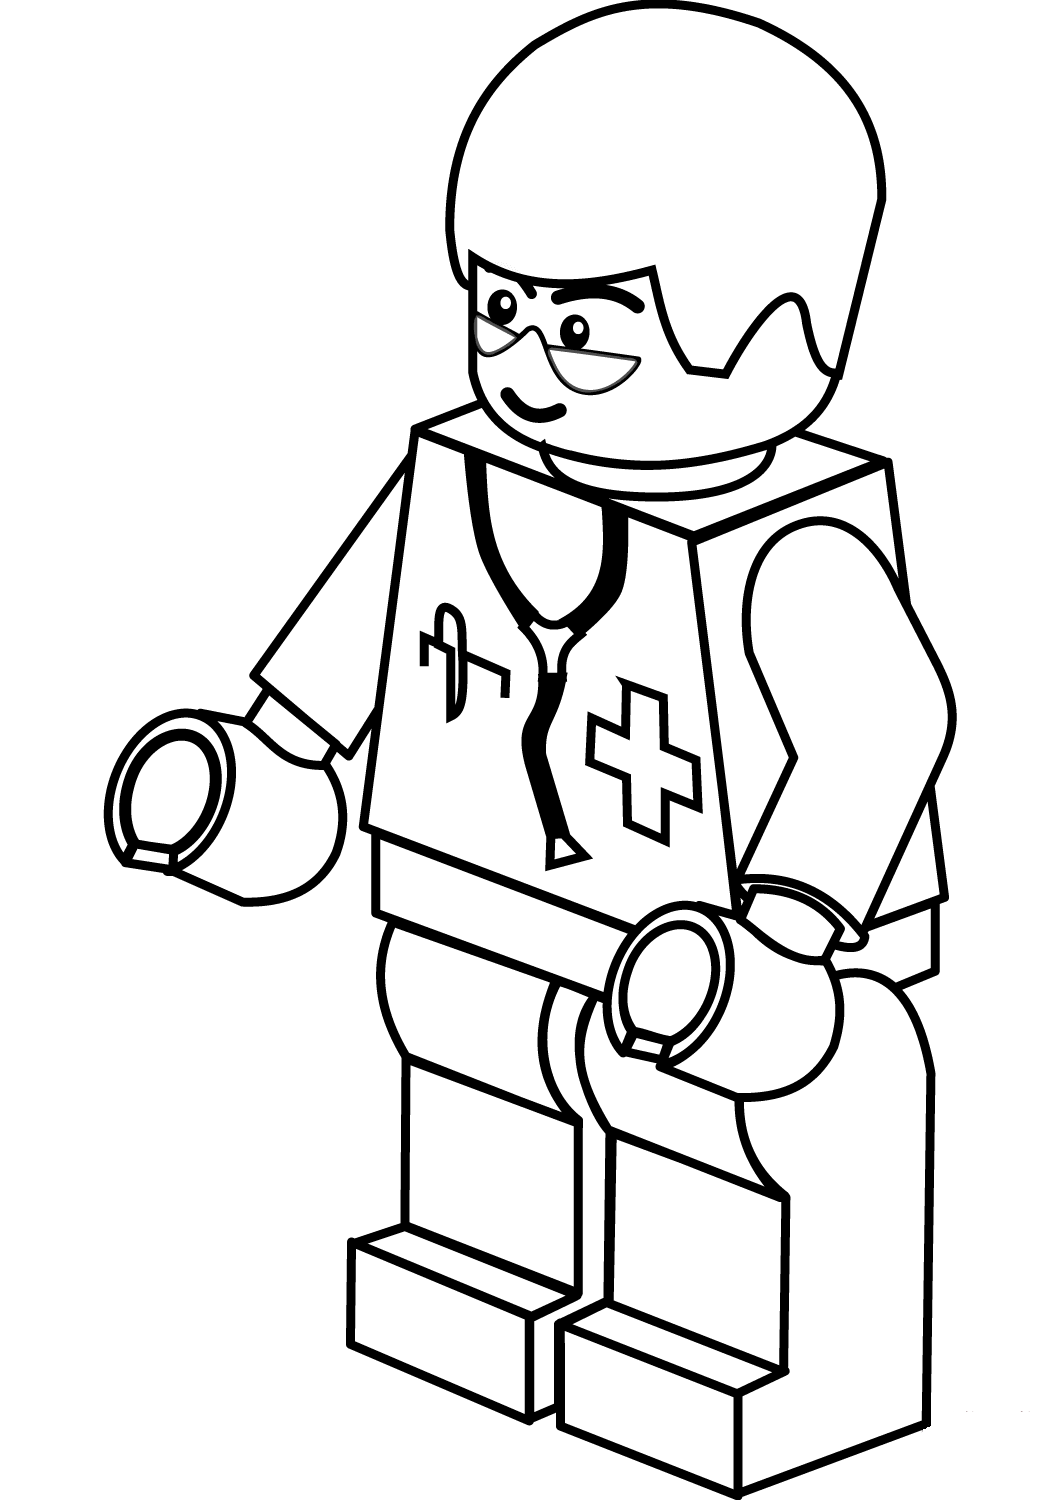 lego coloring pages to print free lego superman coloring pages printable 101 worksheets pages free print coloring to lego